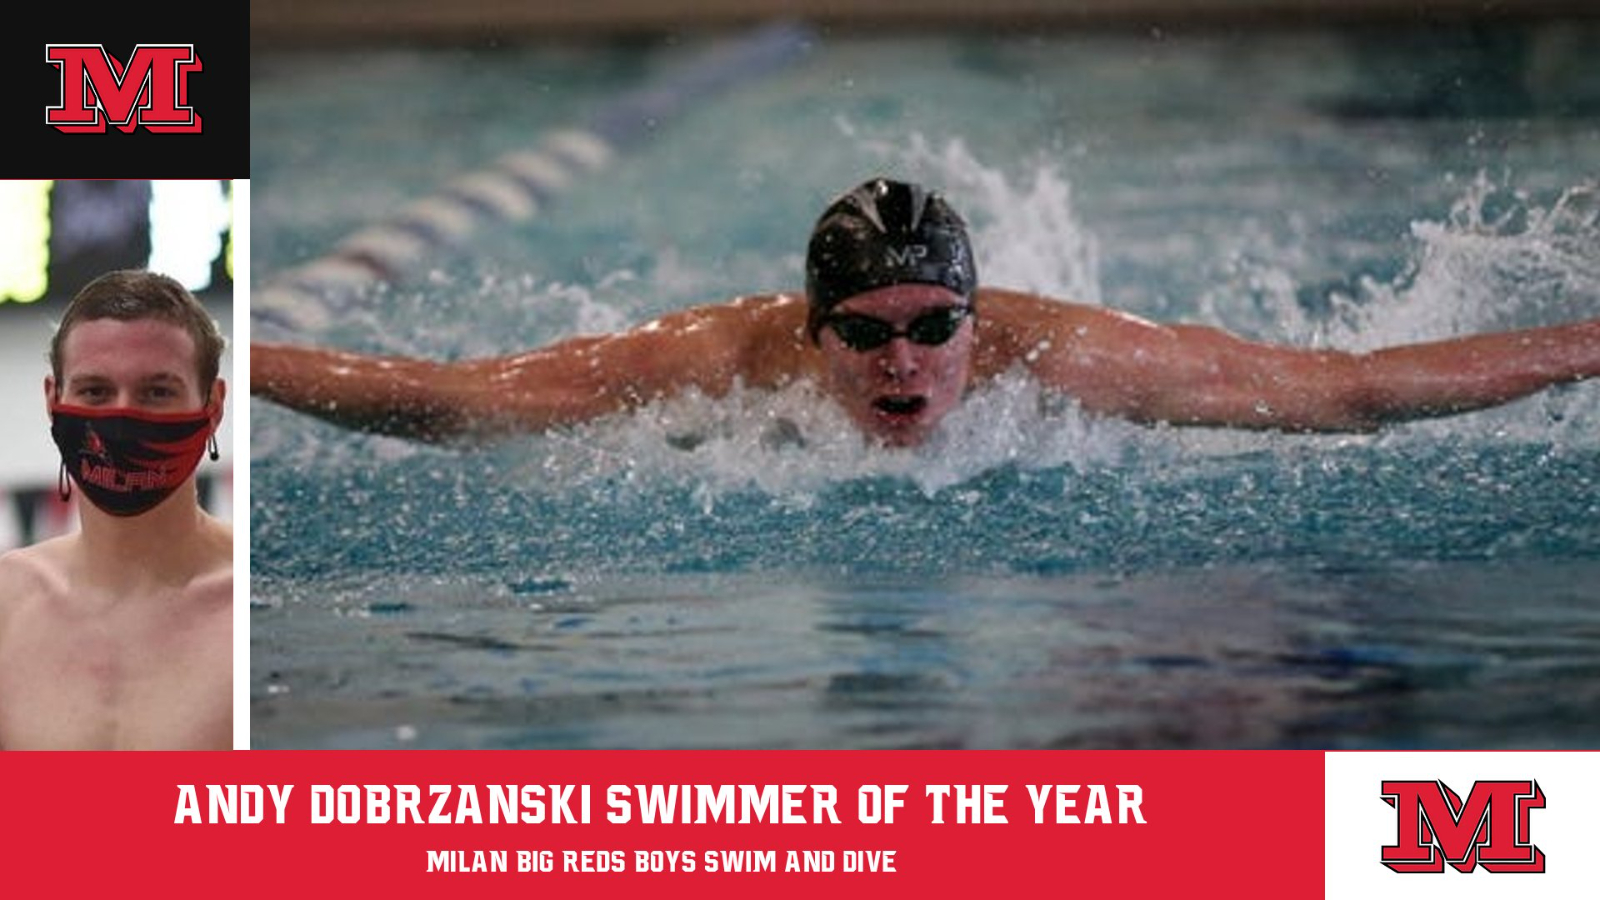 Andy Dobrzanski named Swimmer of the Year